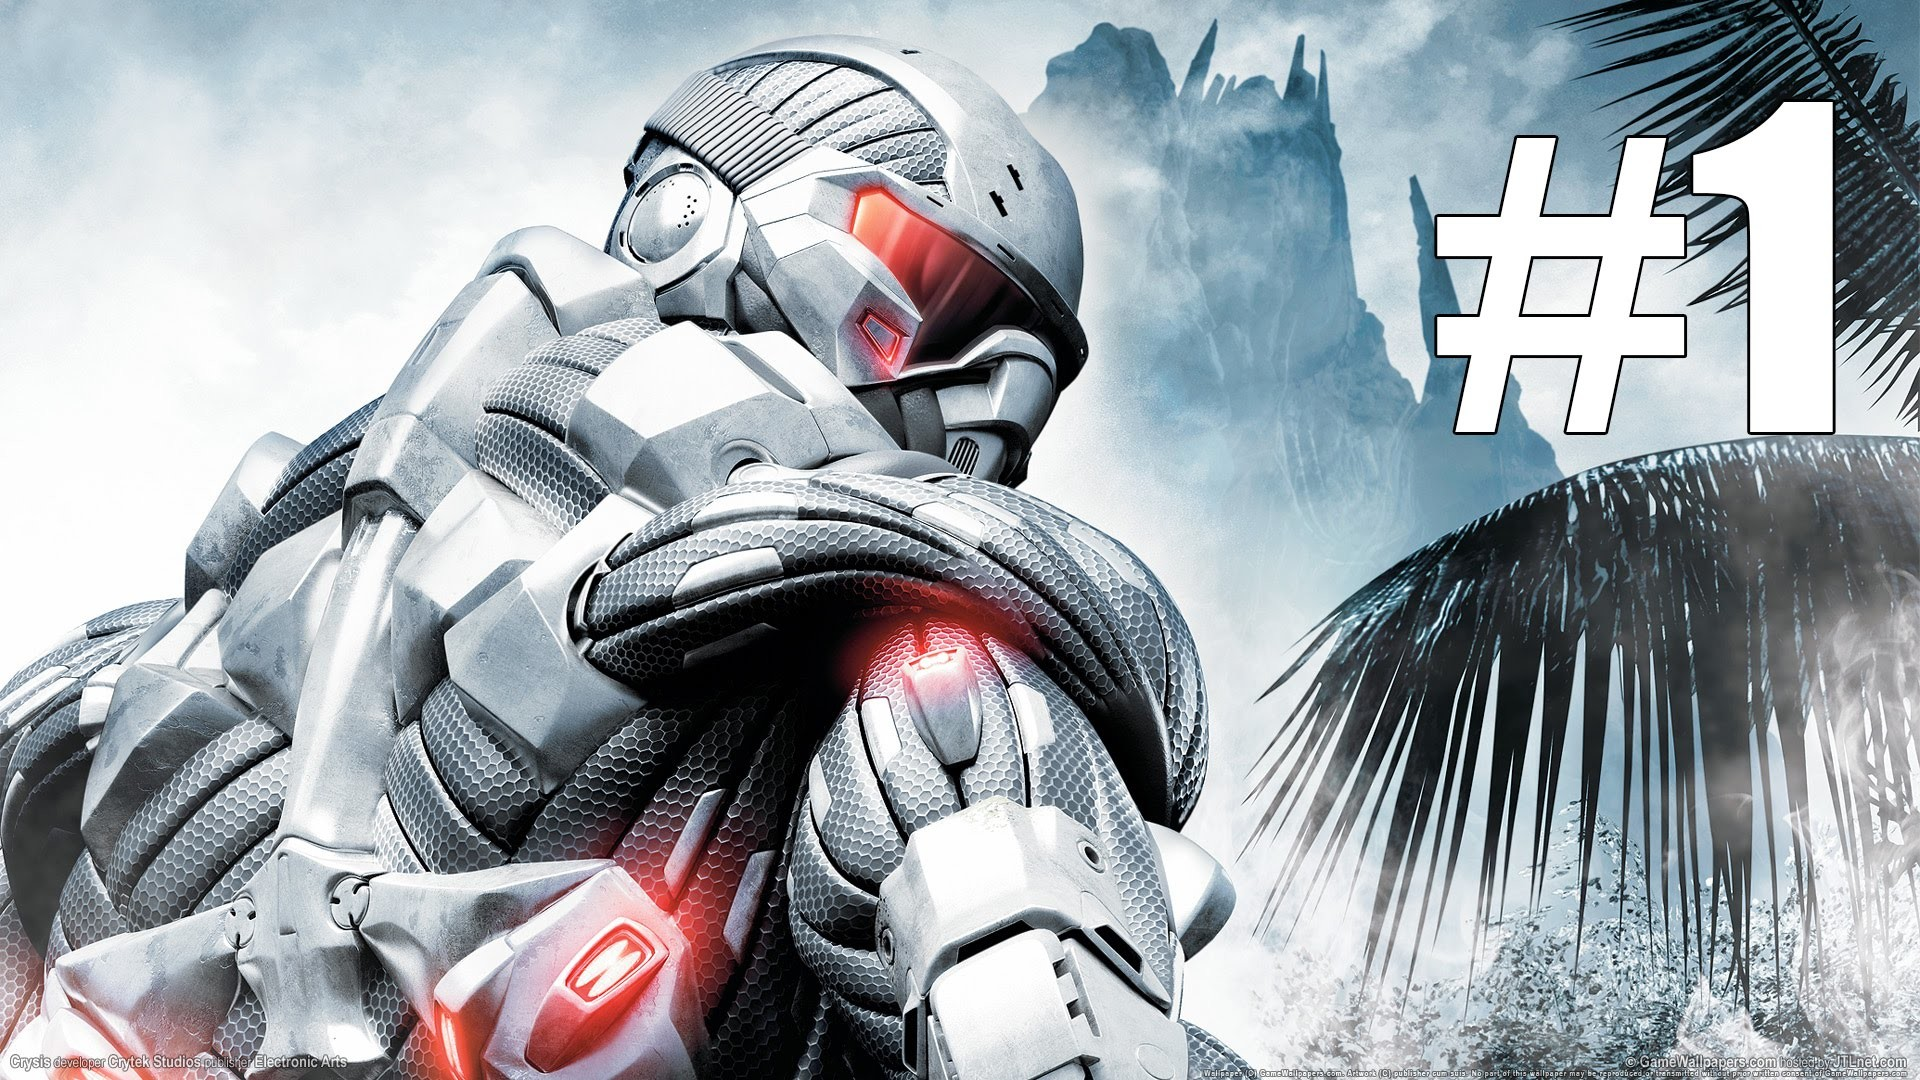 Crysis 1 Gameplay Walkthrough Part 1 No Commentary (PC) [60fps] – YouTube